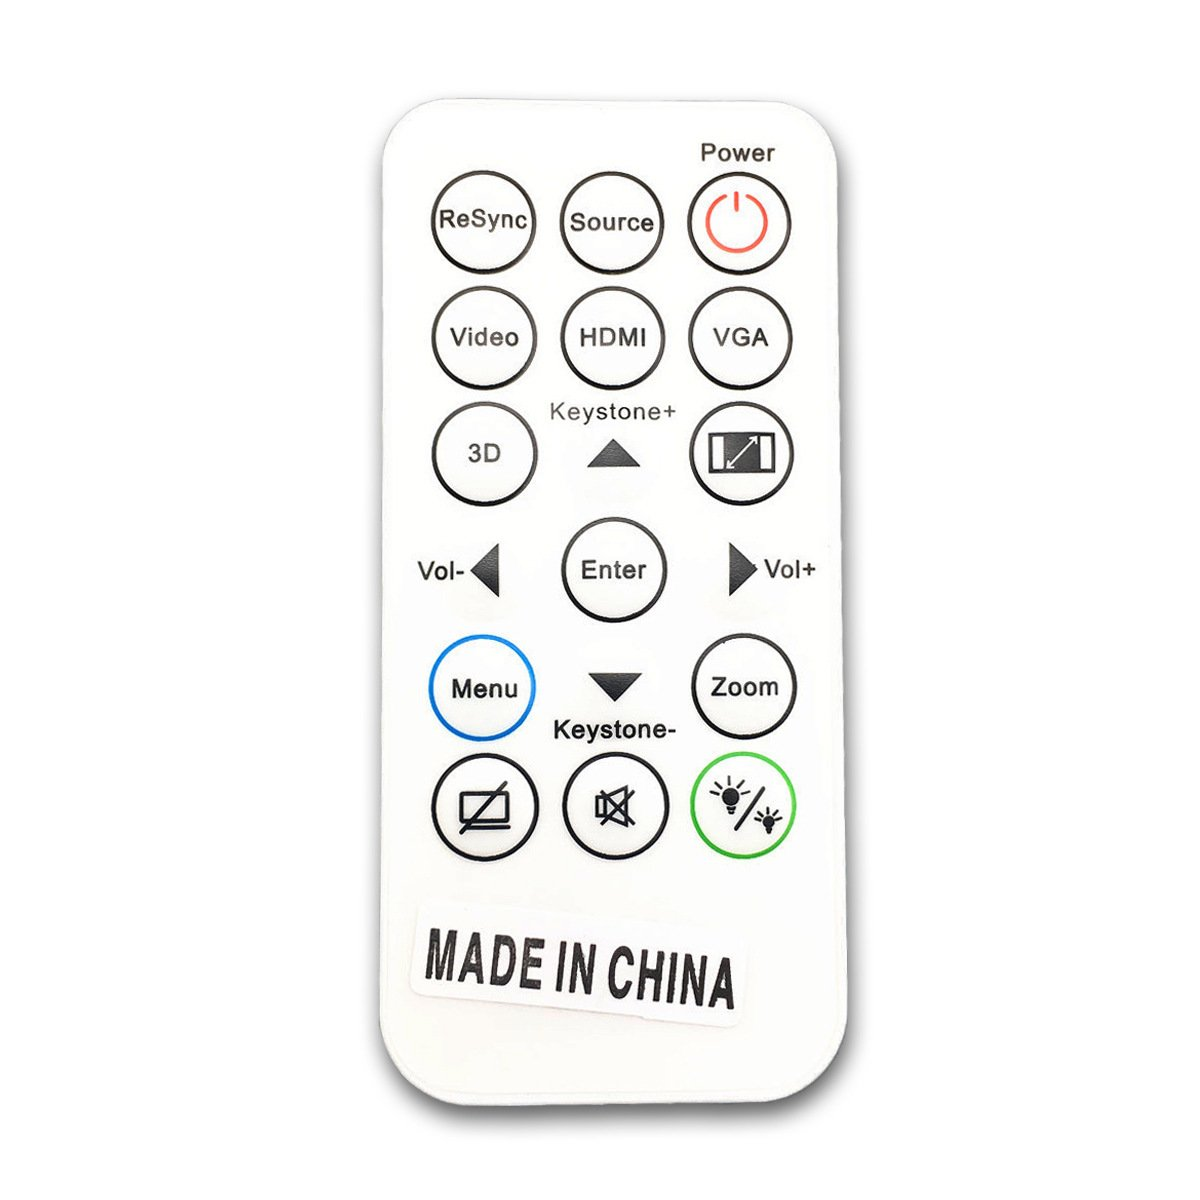 Projector Remote Control for Optoma Projector S315 X312 OEX952 HEF973